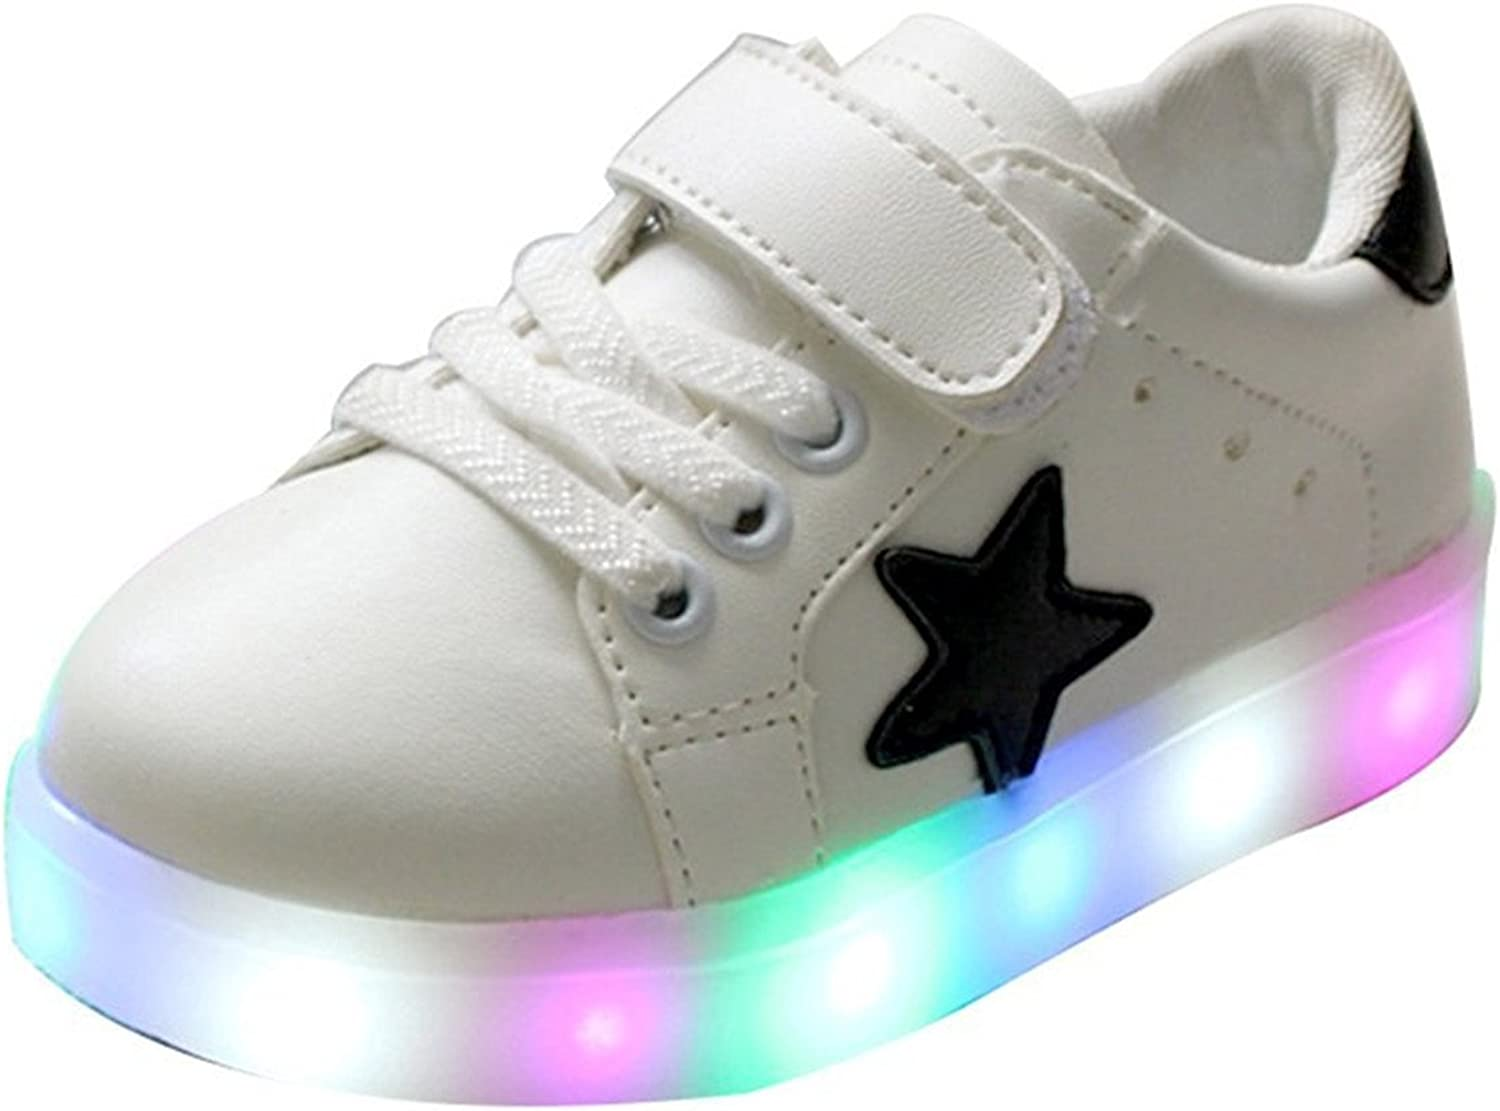 Uerescha Boy's Girl's Sneakers Toddler shoes Kids Lighting Illuminated LED Flash Sports shoes